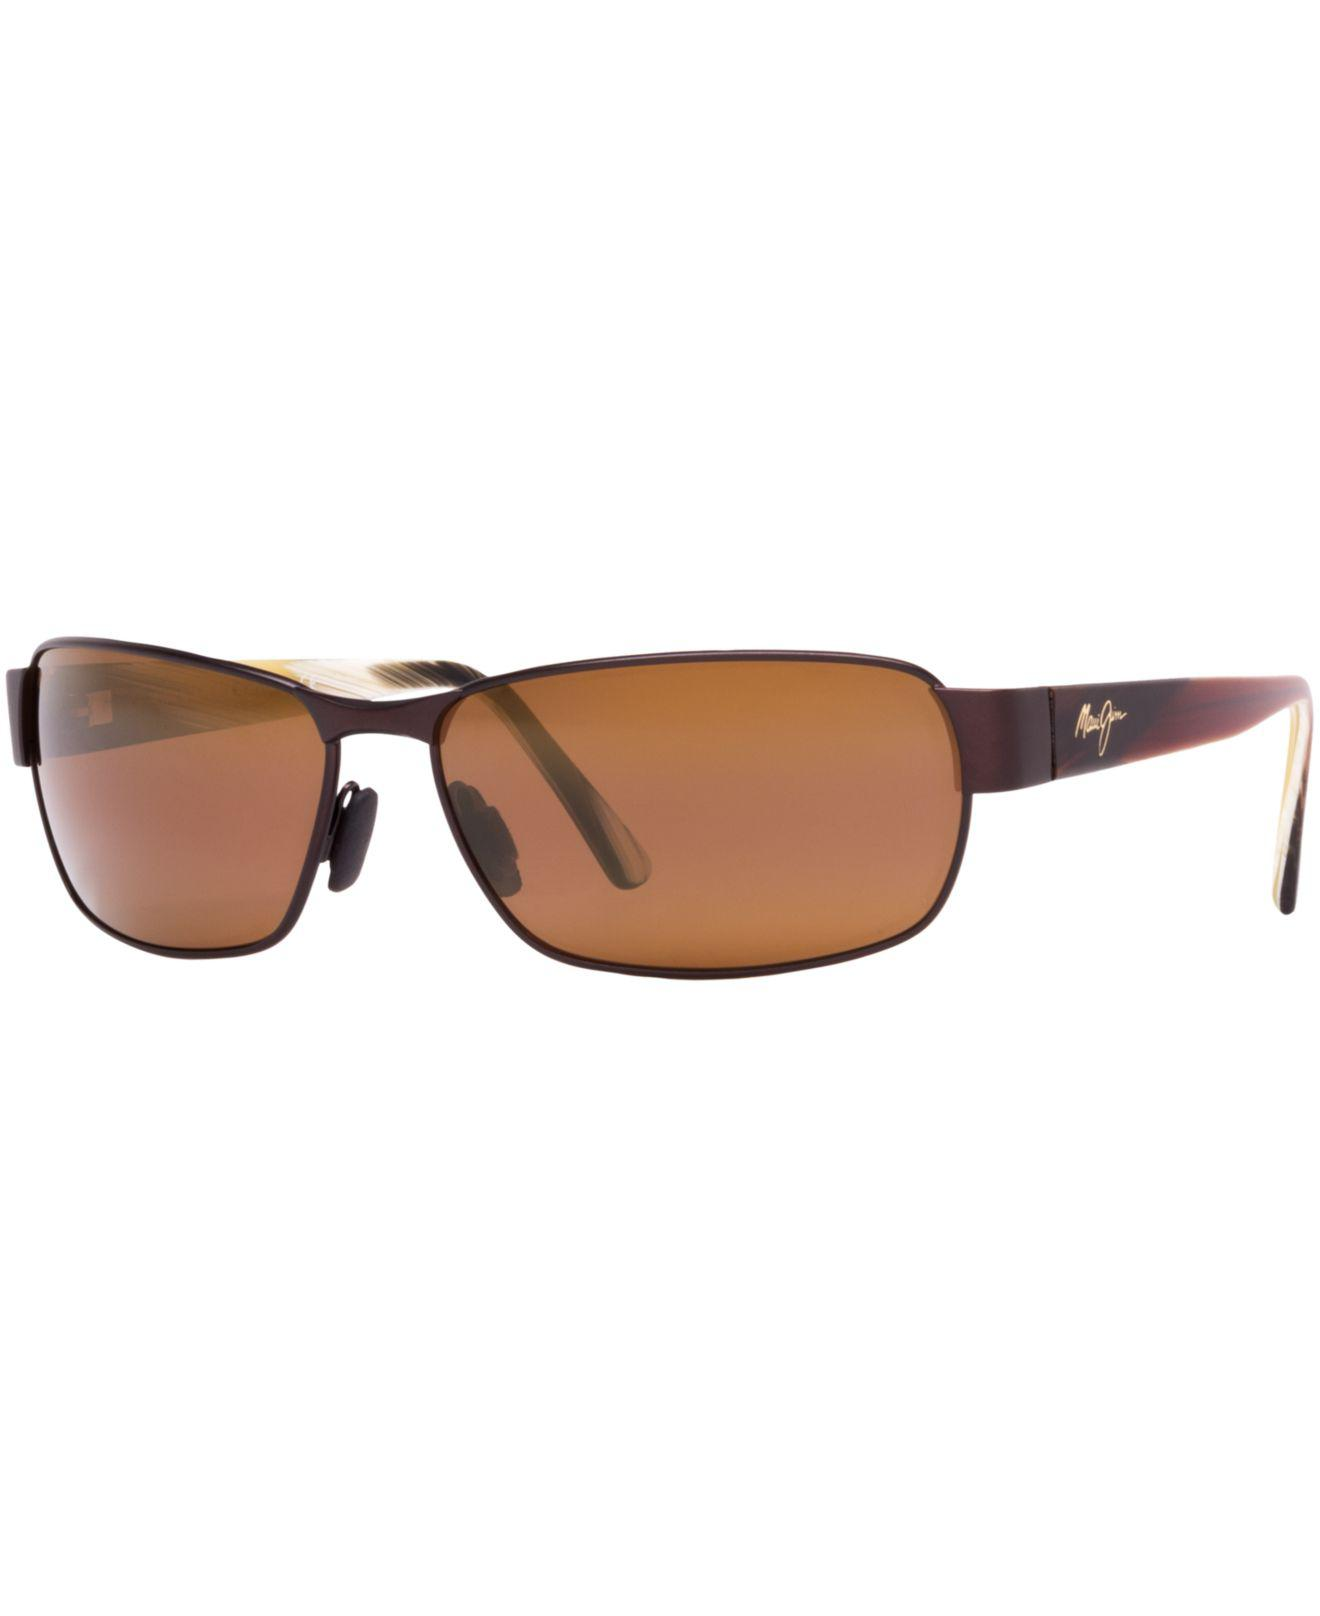 bb7ef6d3198 Lyst - Maui Jim 249 Black Coral in Brown